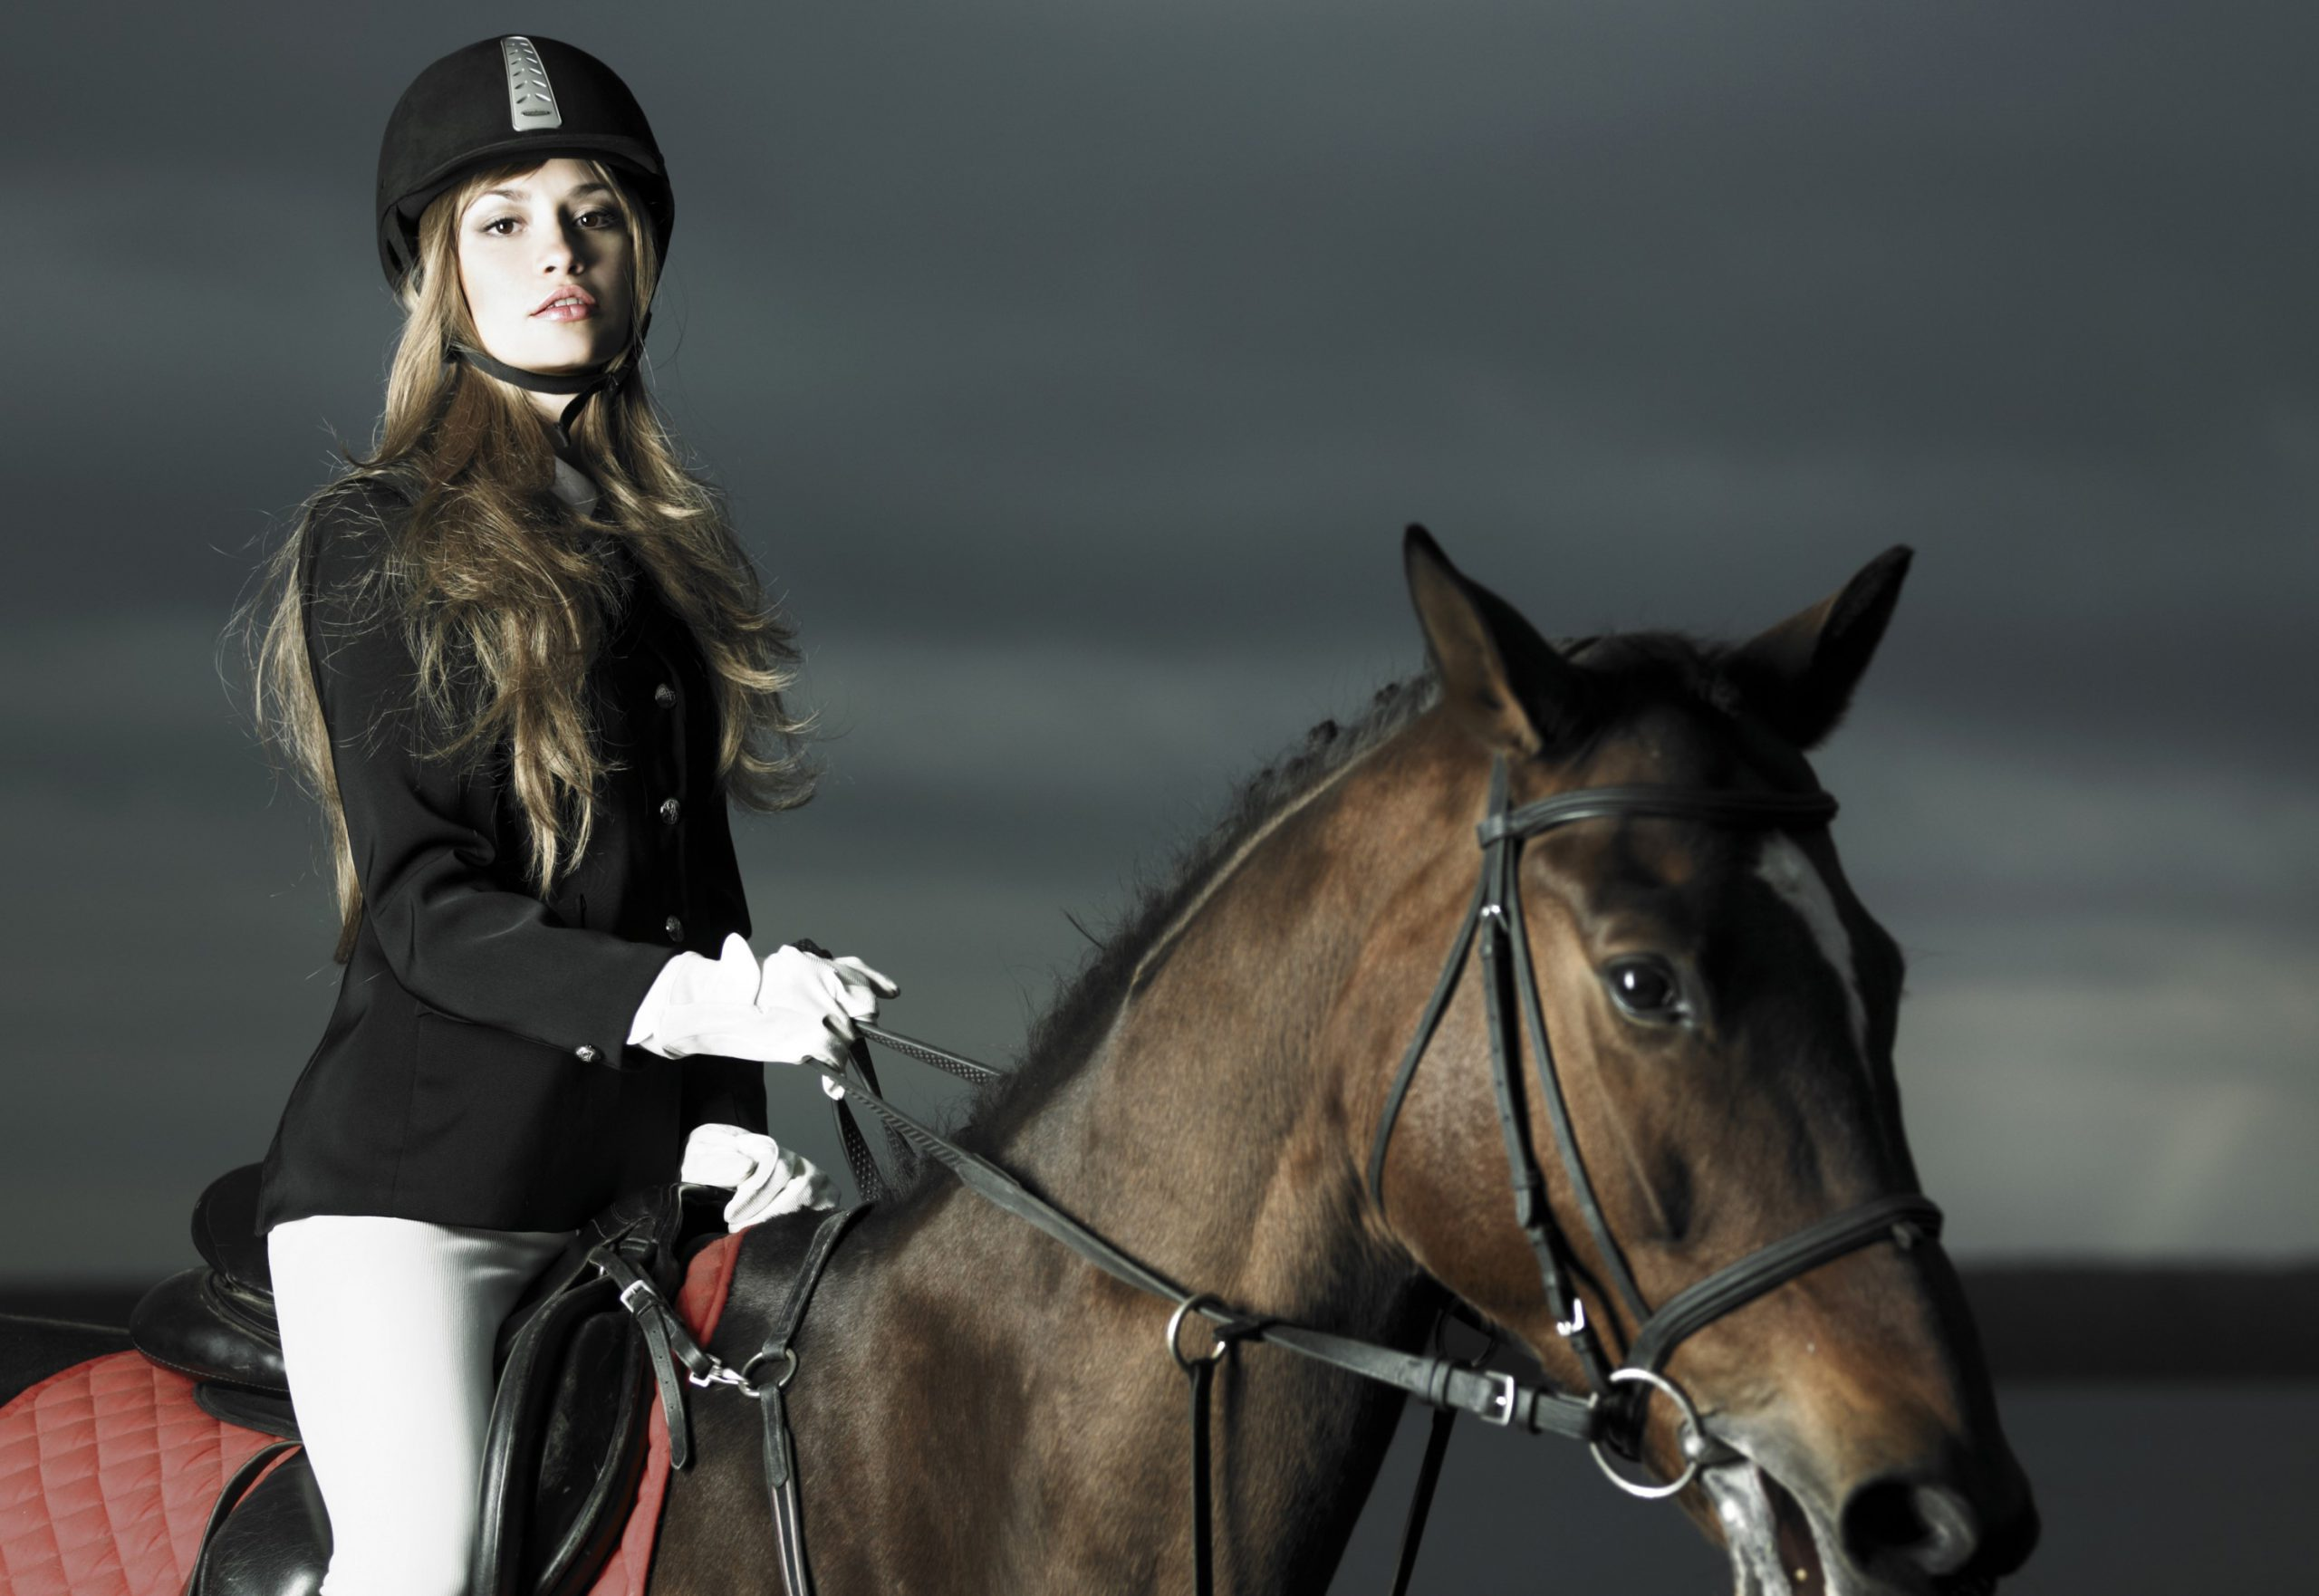 AW 20/21: Horse Riding on My Mind #TrendAlert